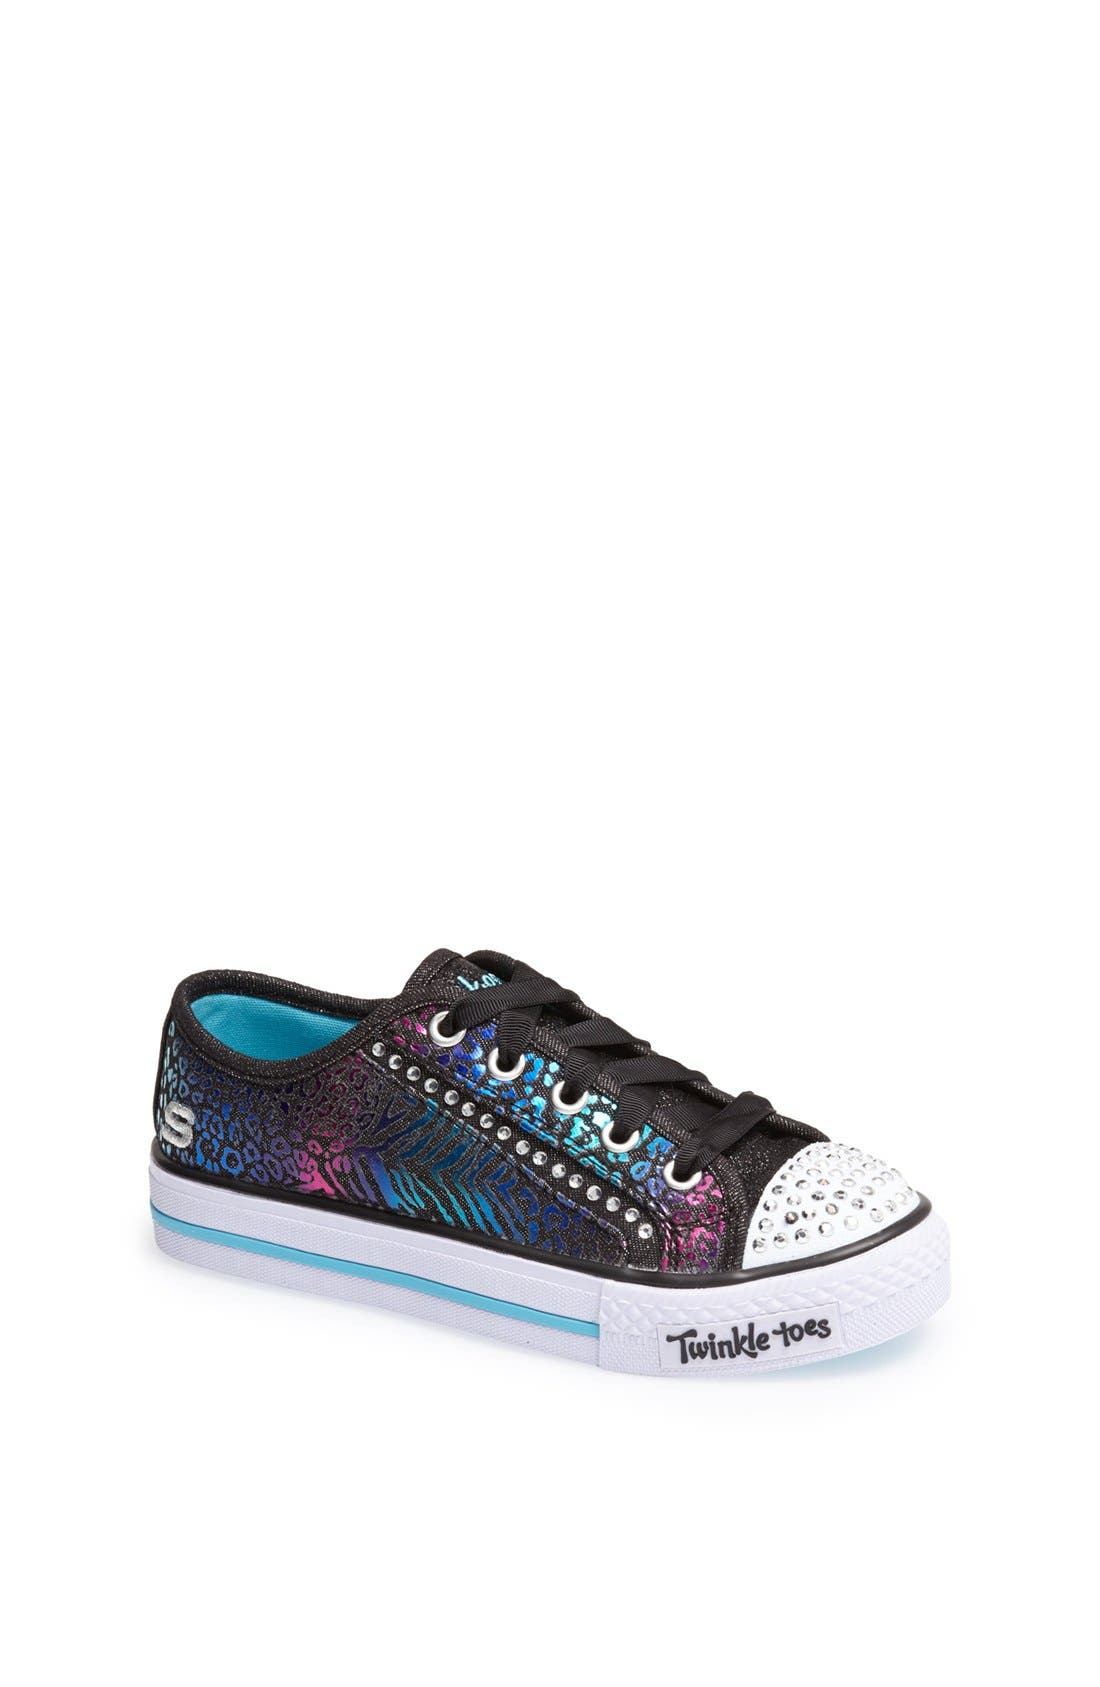 Alternate Image 1 Selected - SKECHERS 'Shuffles - Gimme Glam' Light Up Sneaker (Toddler, Little Kid & Big Kid)